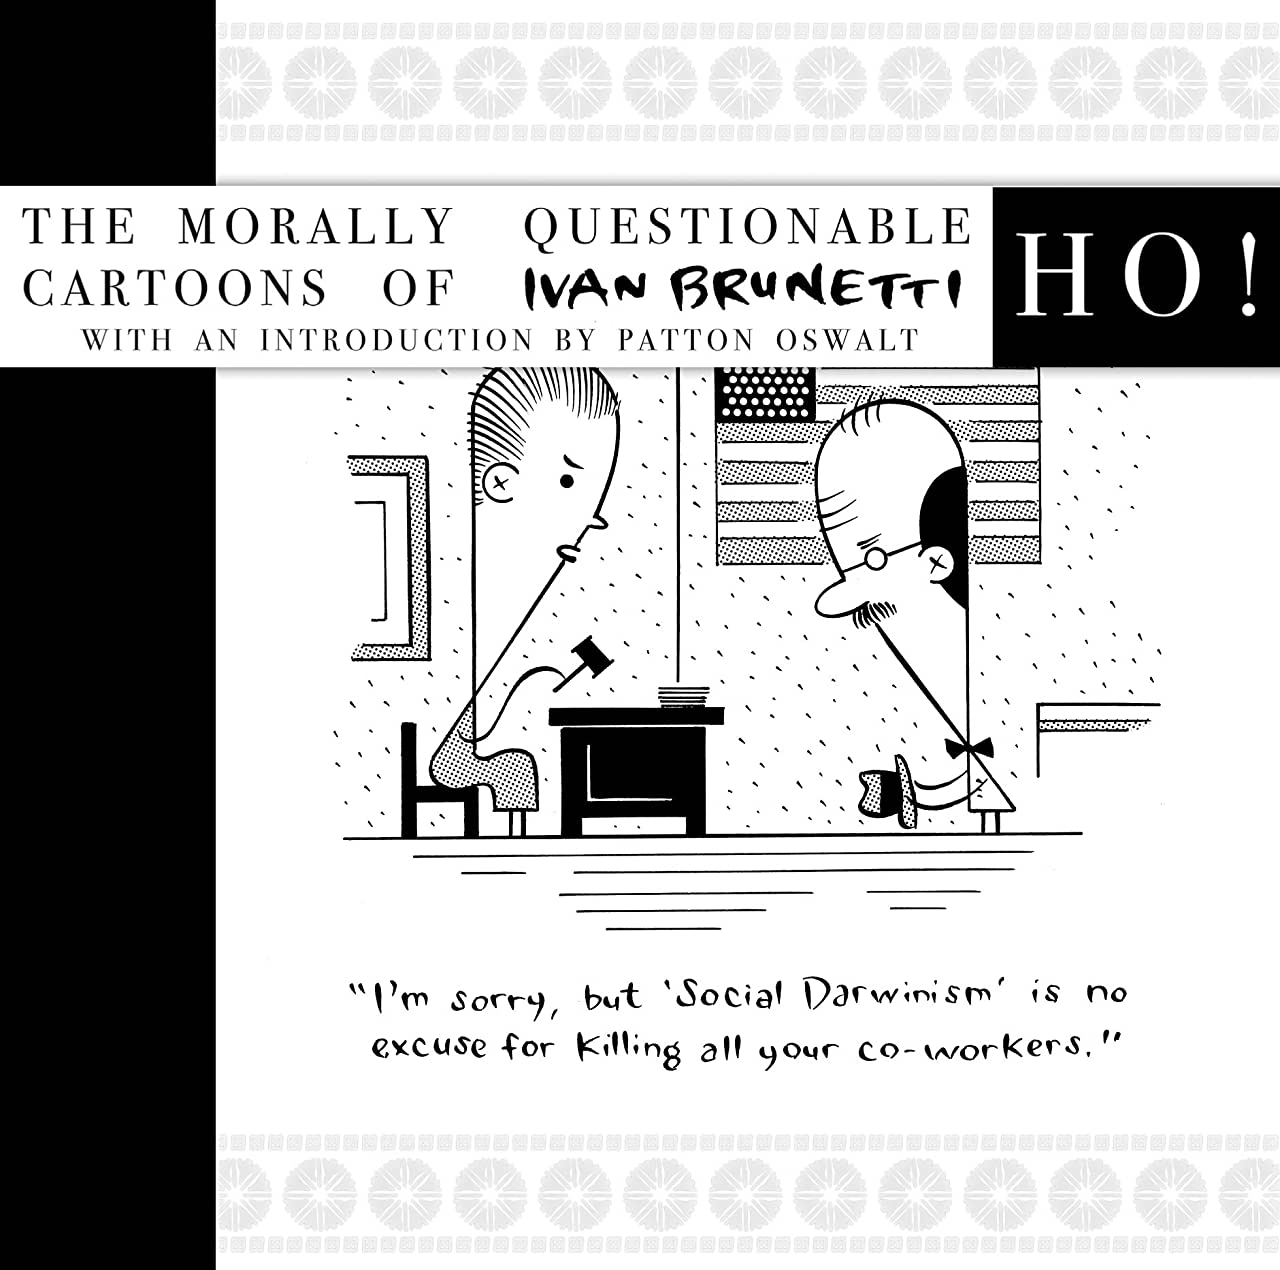 Ho!: The Morally Questionable Cartoons of Ivan Brunetti